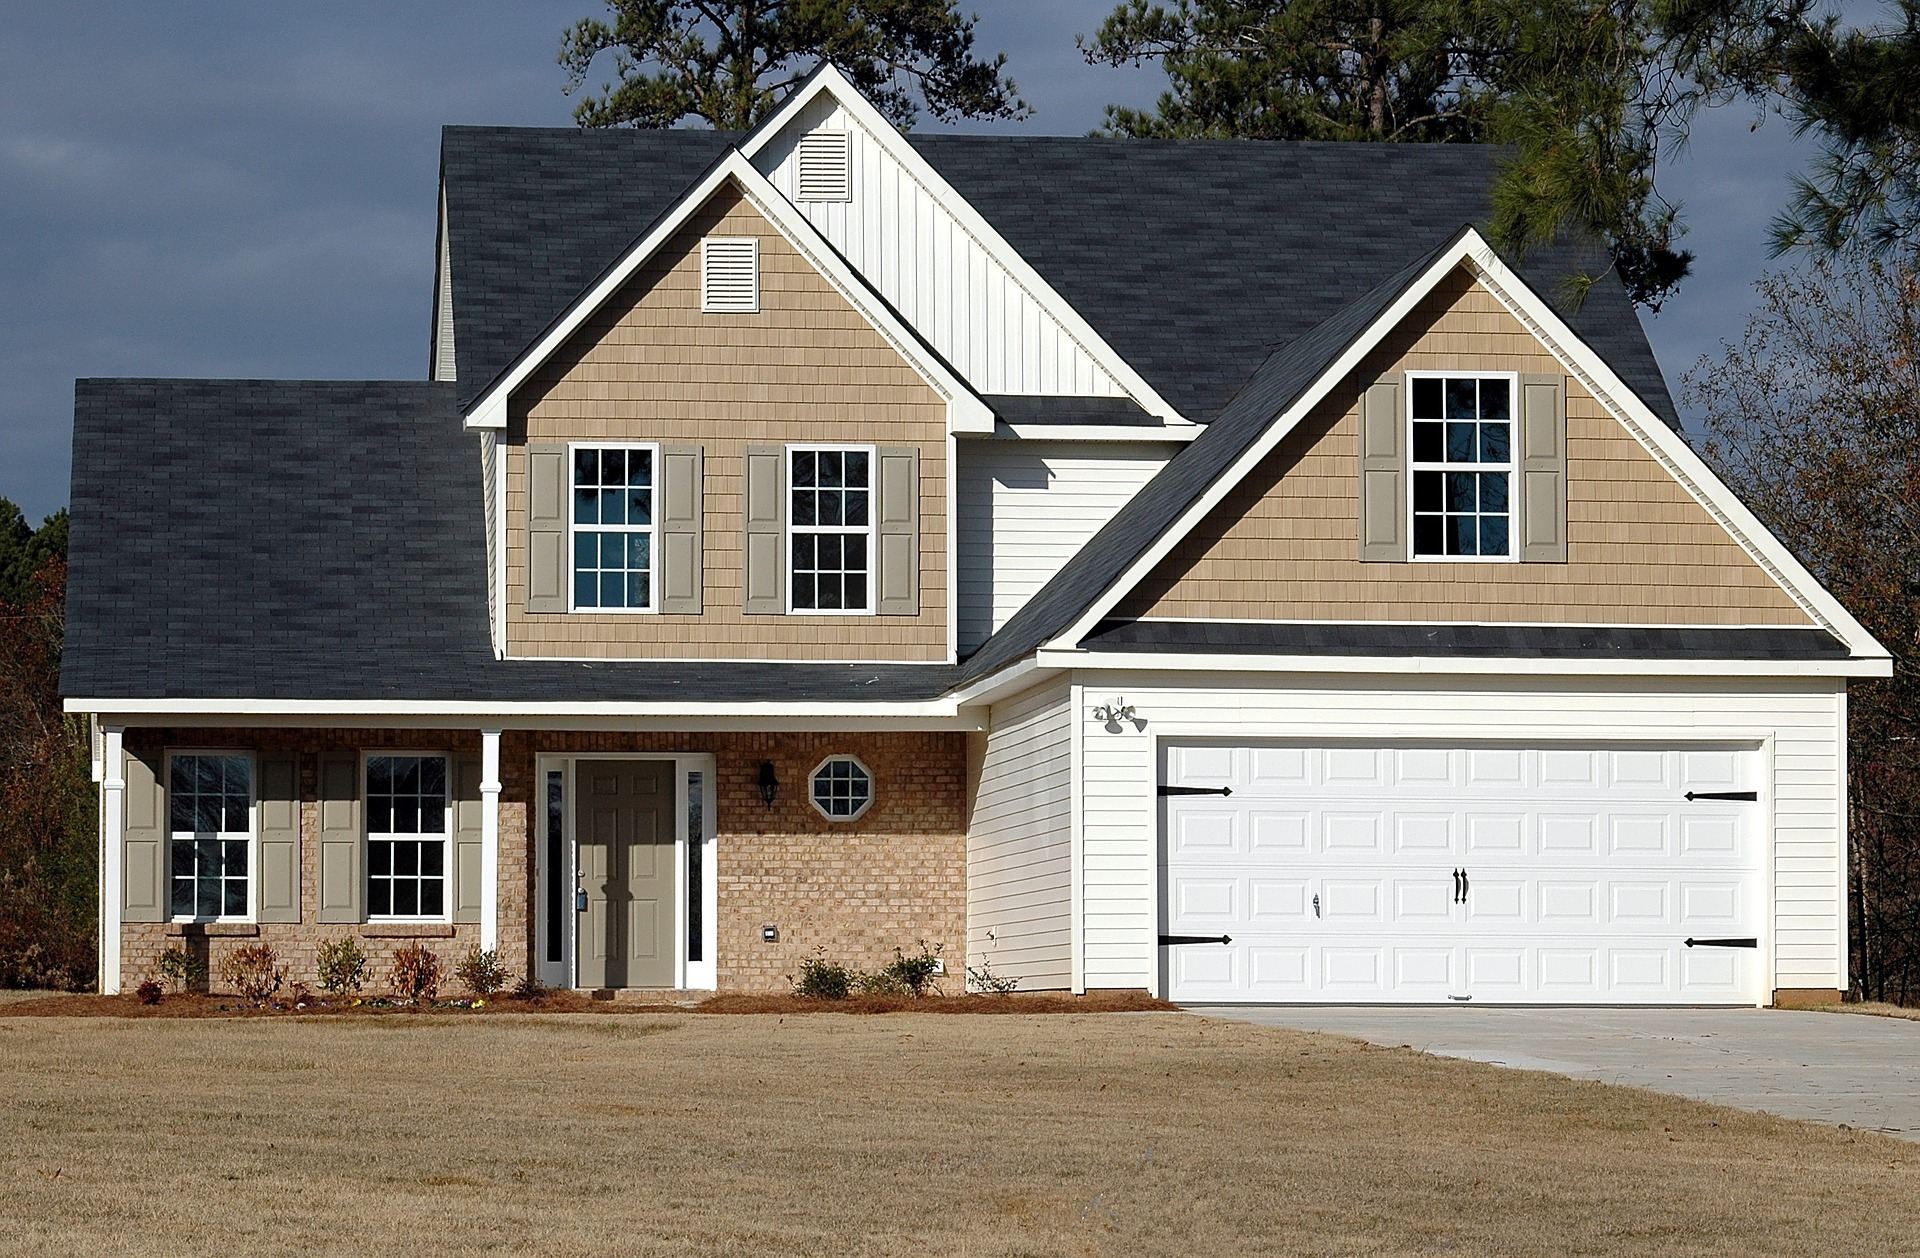 new-home-1540875_1920